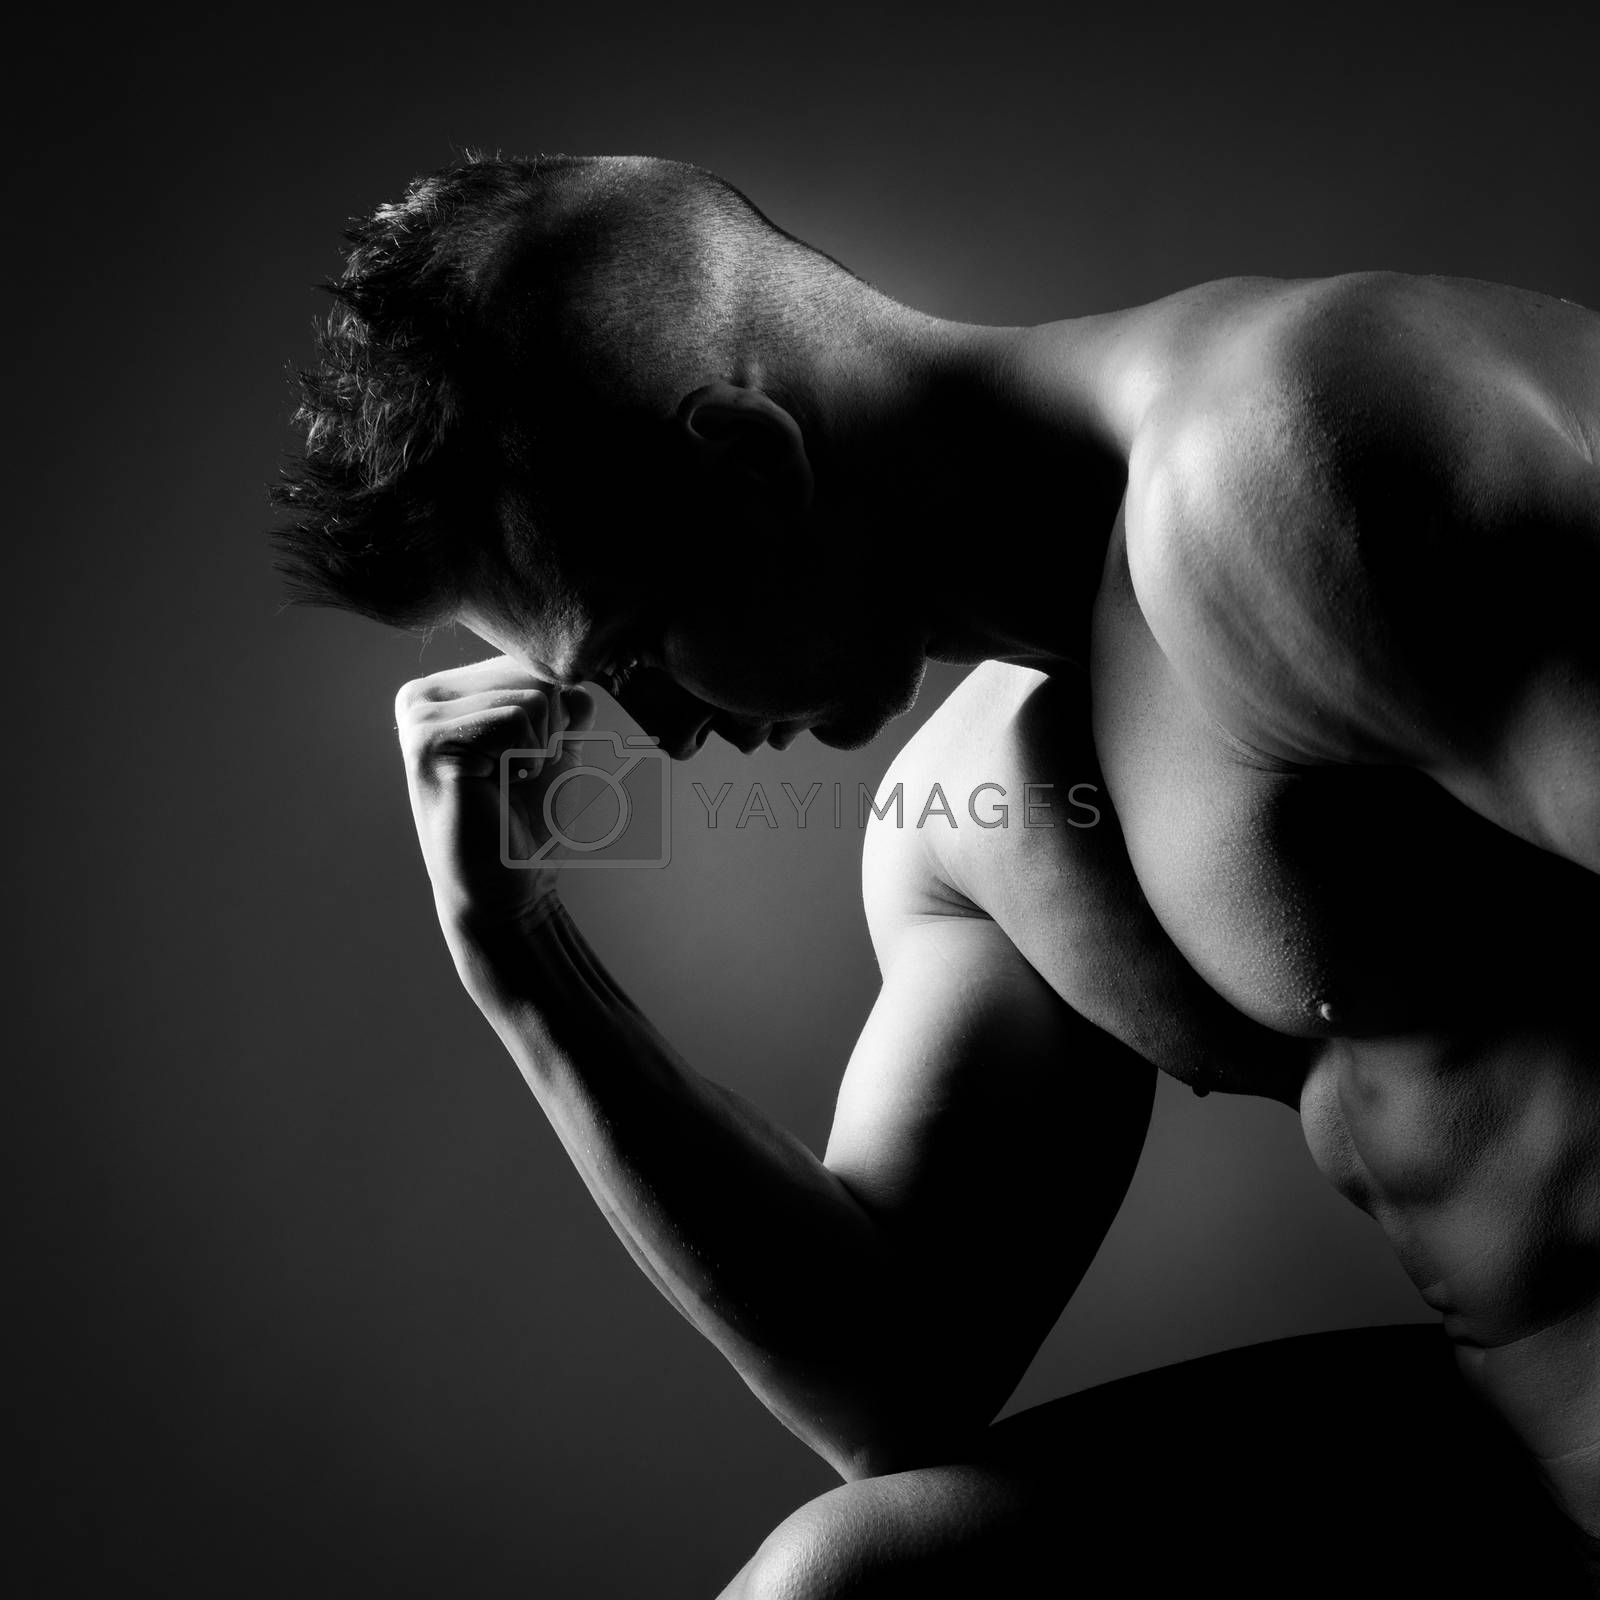 Attractive body builder posing and showing off muscles on dark background.